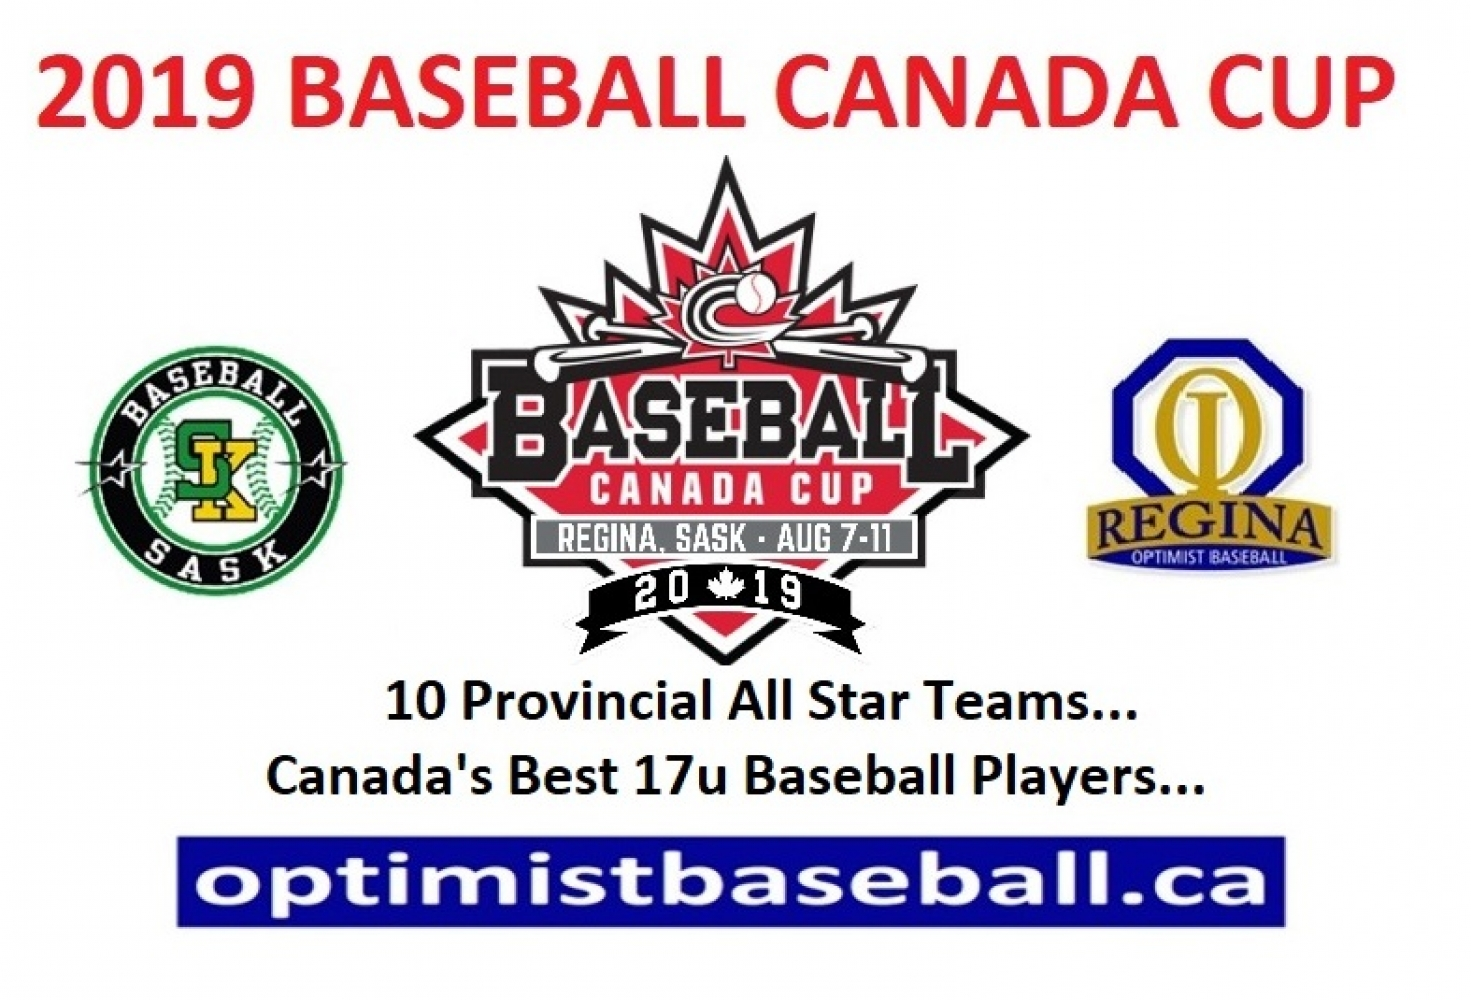 Supporters and Sponsors of the 2019 Baseball Canada Cup! A Very Big Thank You to All Supporters and Sponsors! See You at The Tournament!